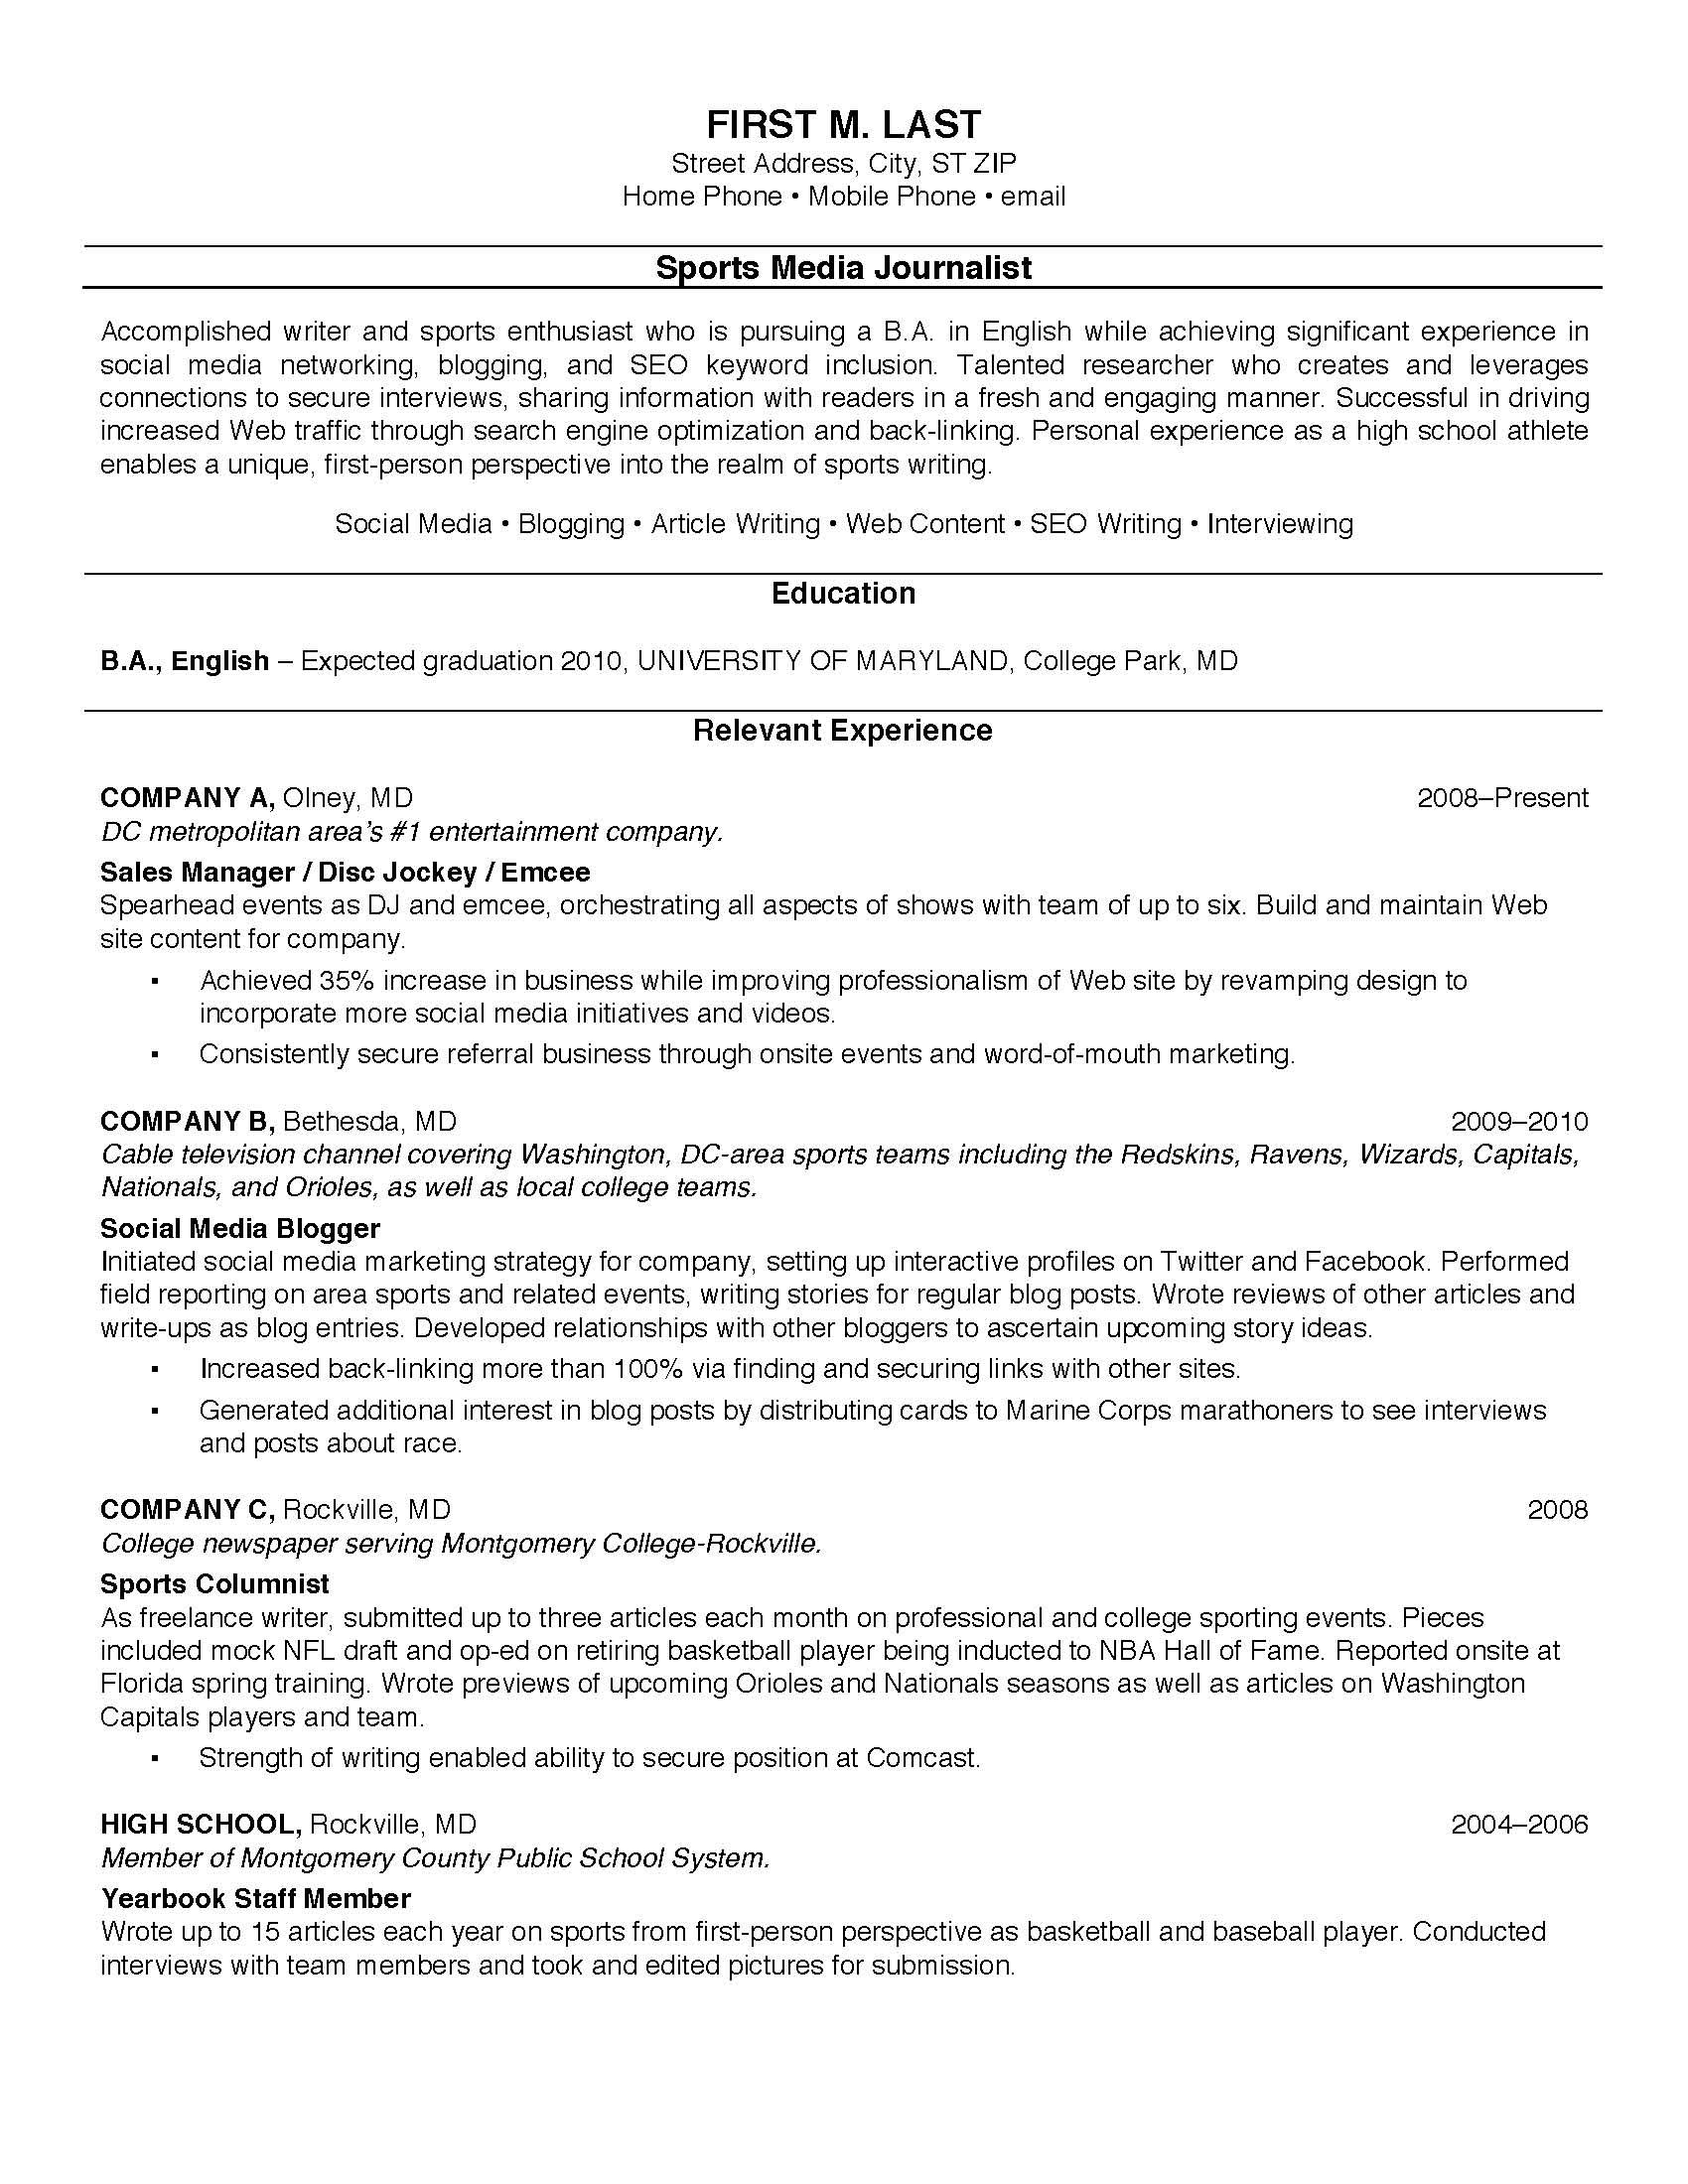 resume for recent high school graduate first year college student template templates Resume First Year College Student Resume